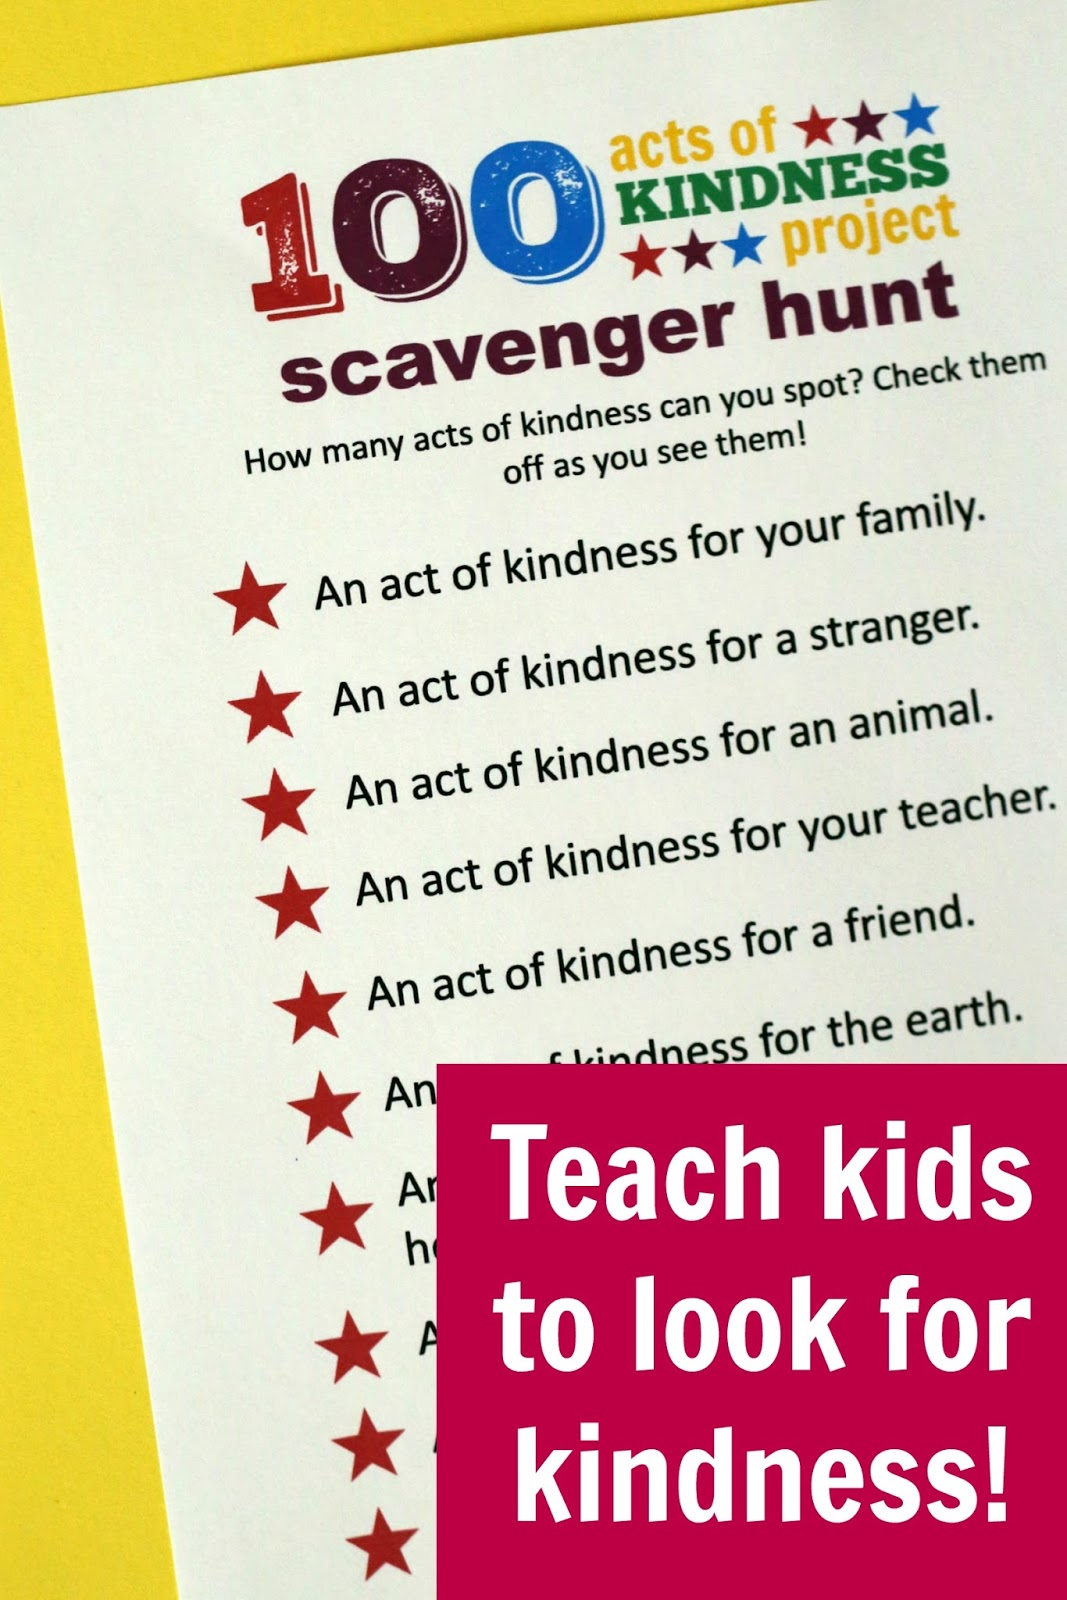 Toddler Approved!: Kindness Scavenger Hunt